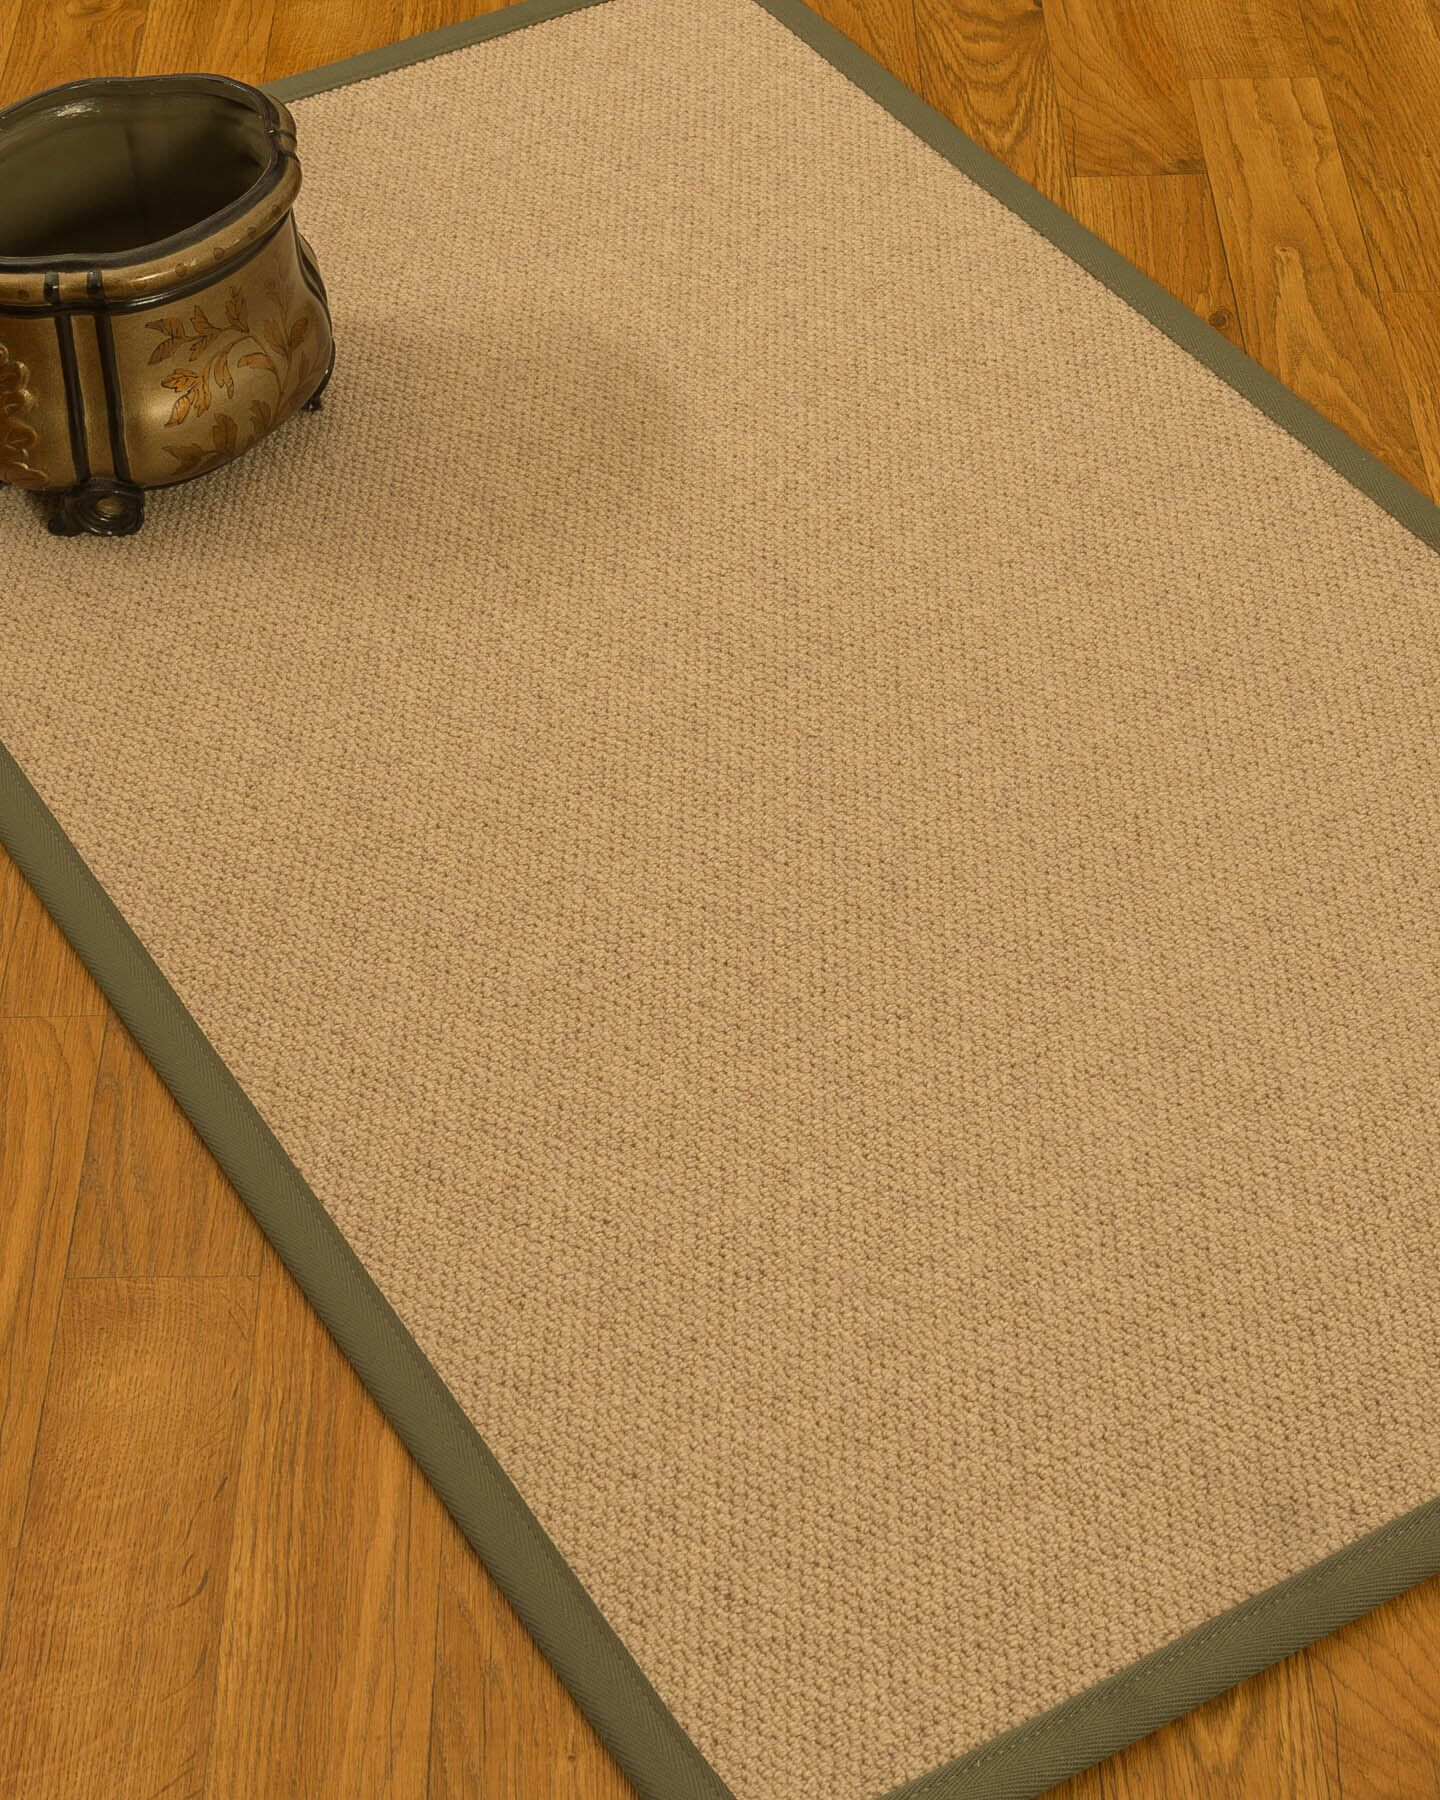 Chavira Border Hand-Woven Wool Beige/Fossil Area Rug Rug Size: Rectangle 6' x 9', Rug Pad Included: Yes